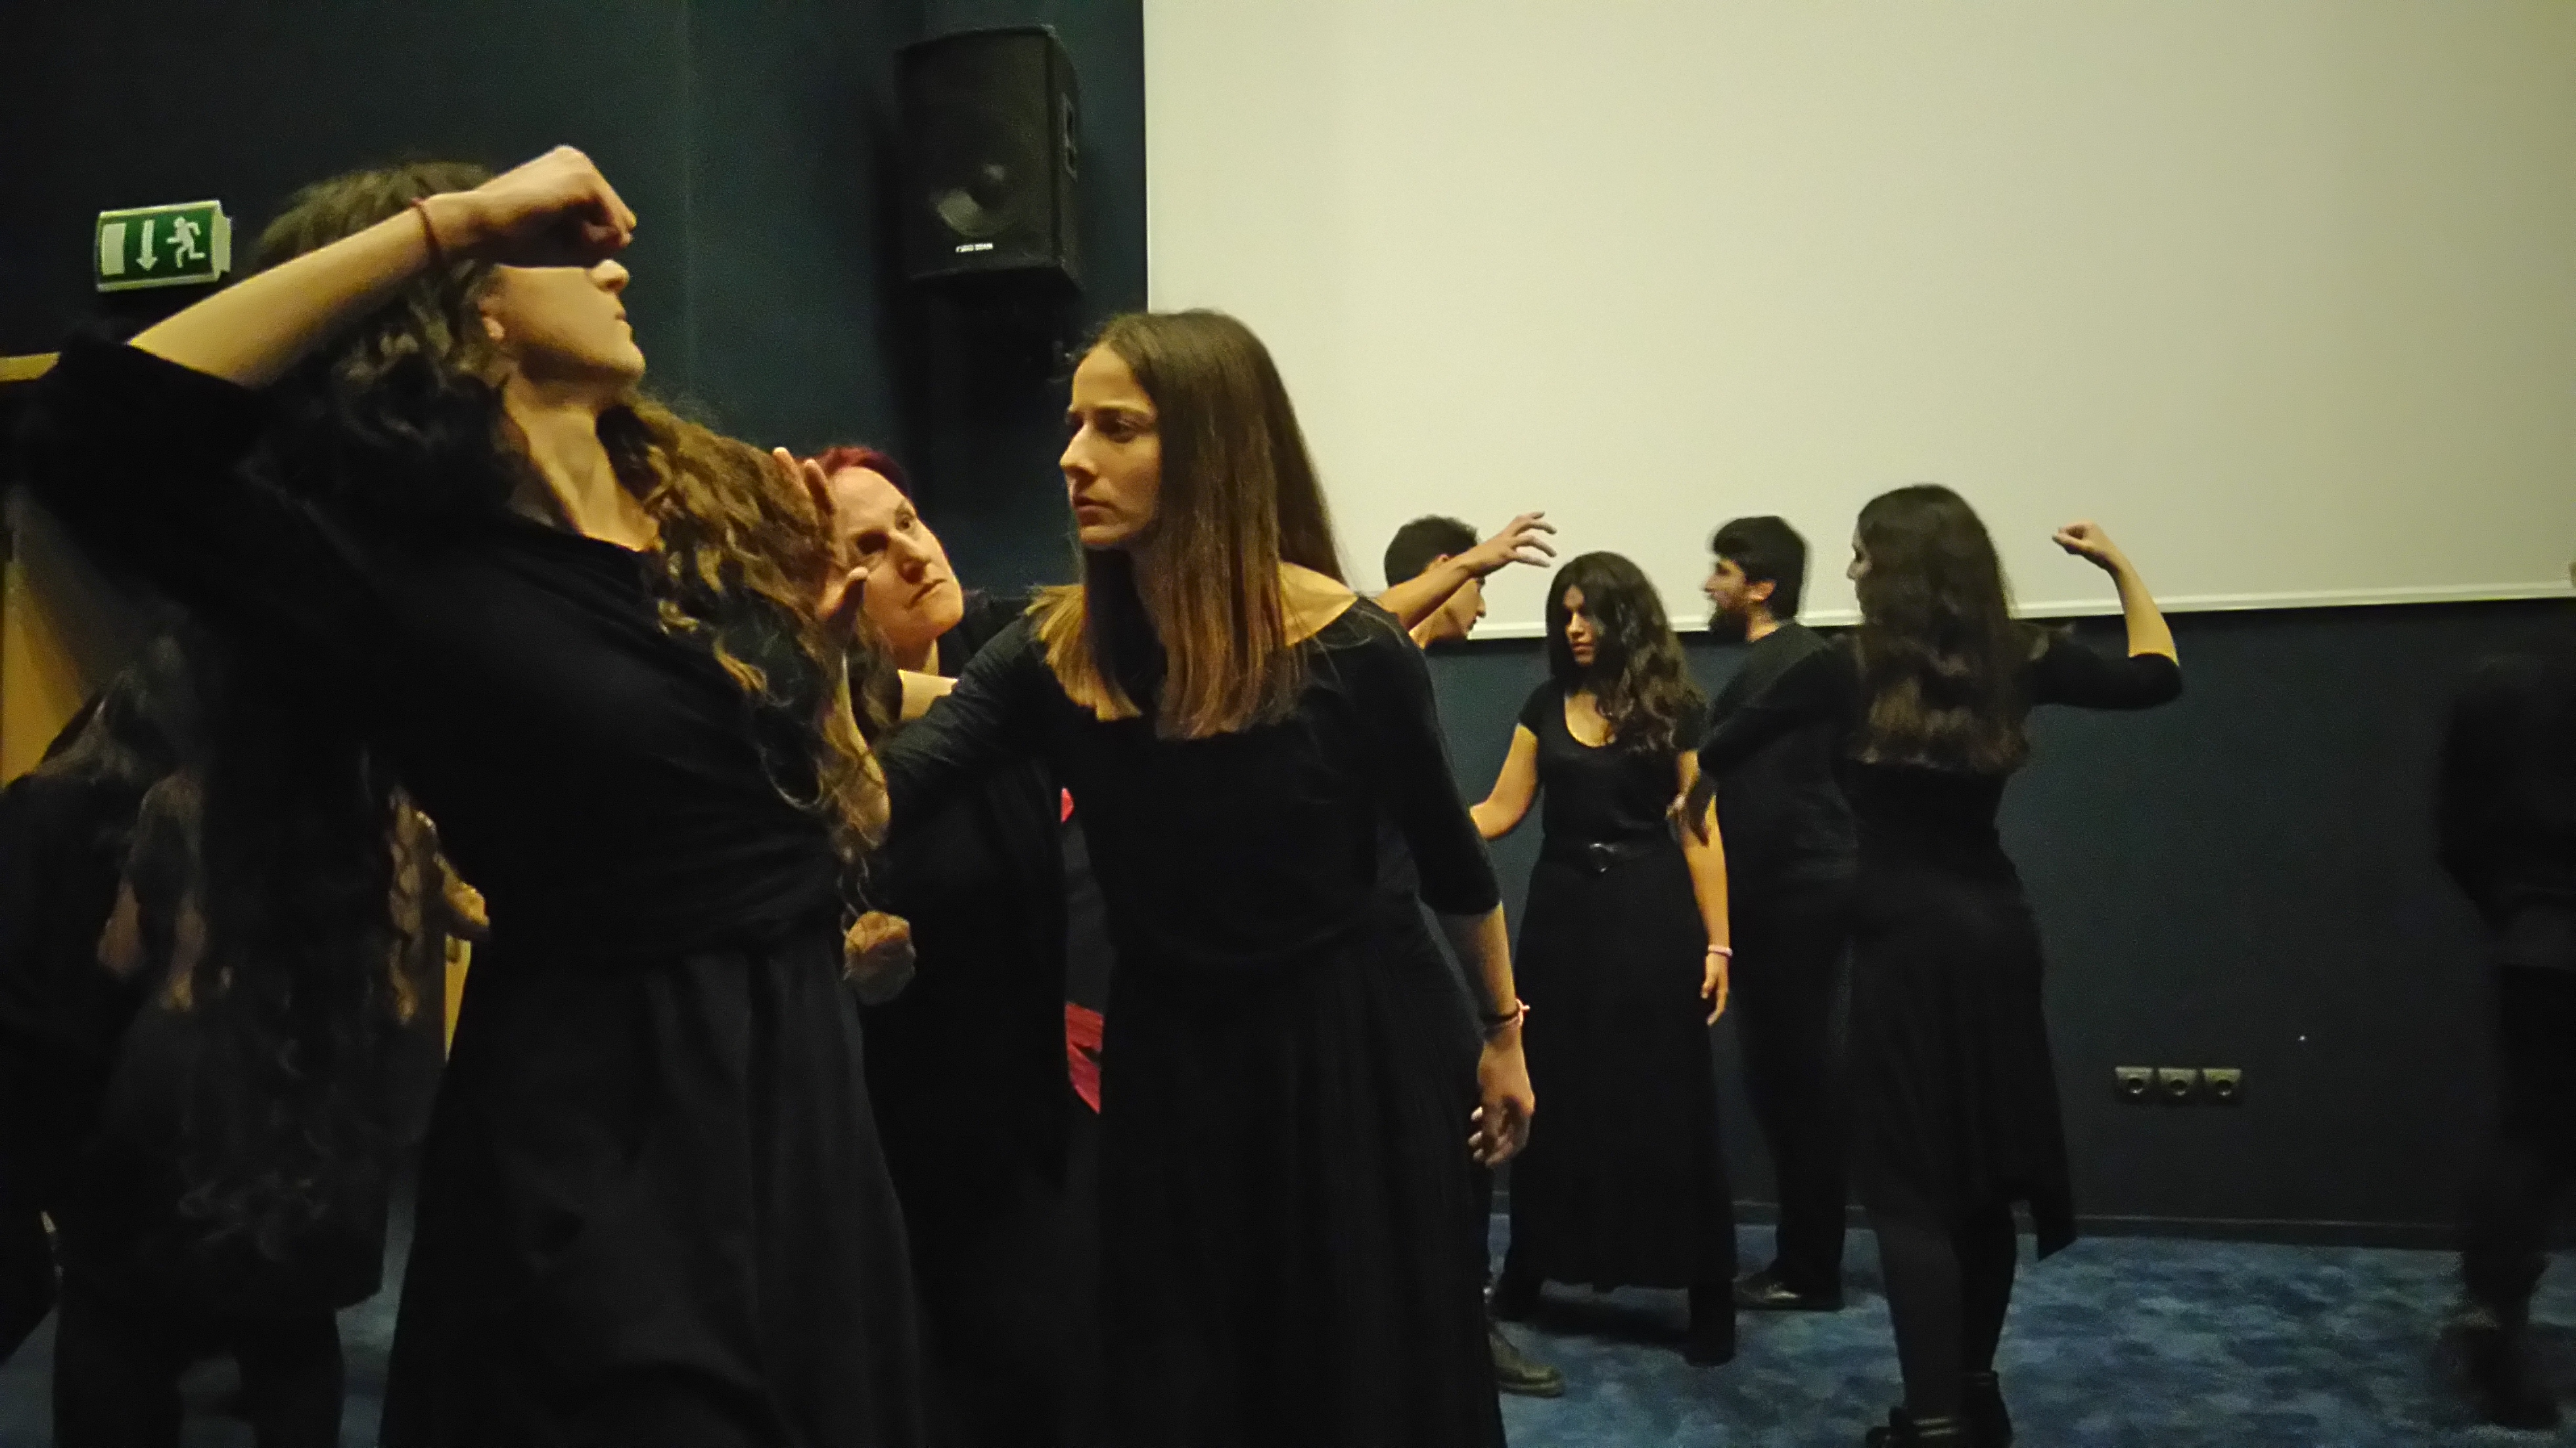 Performance during Week of Action Against Racism in Patras